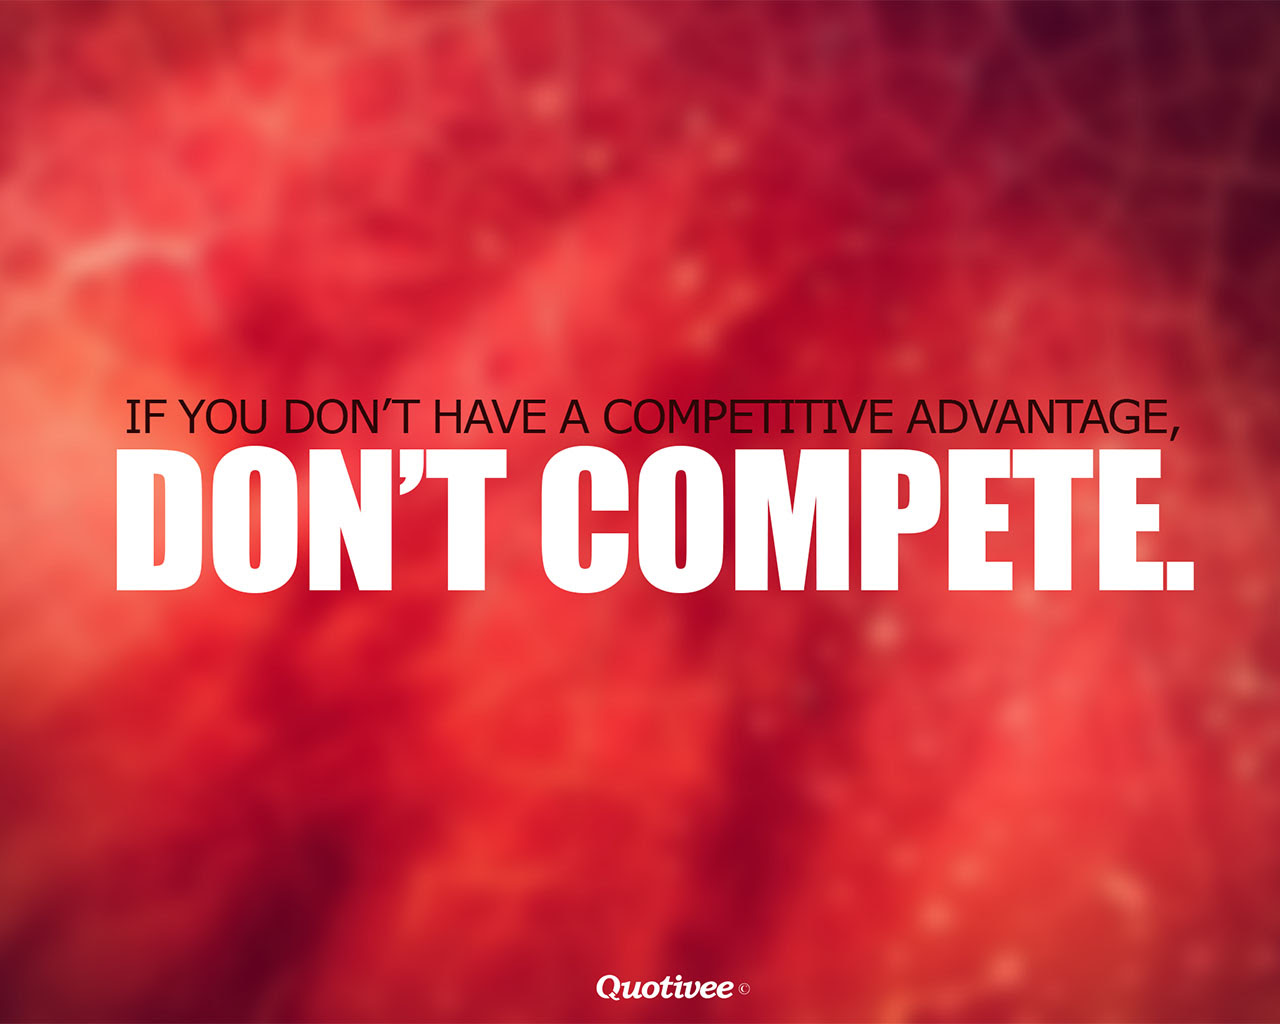 Competitive Advantage Inspirational Quotes Quotivee